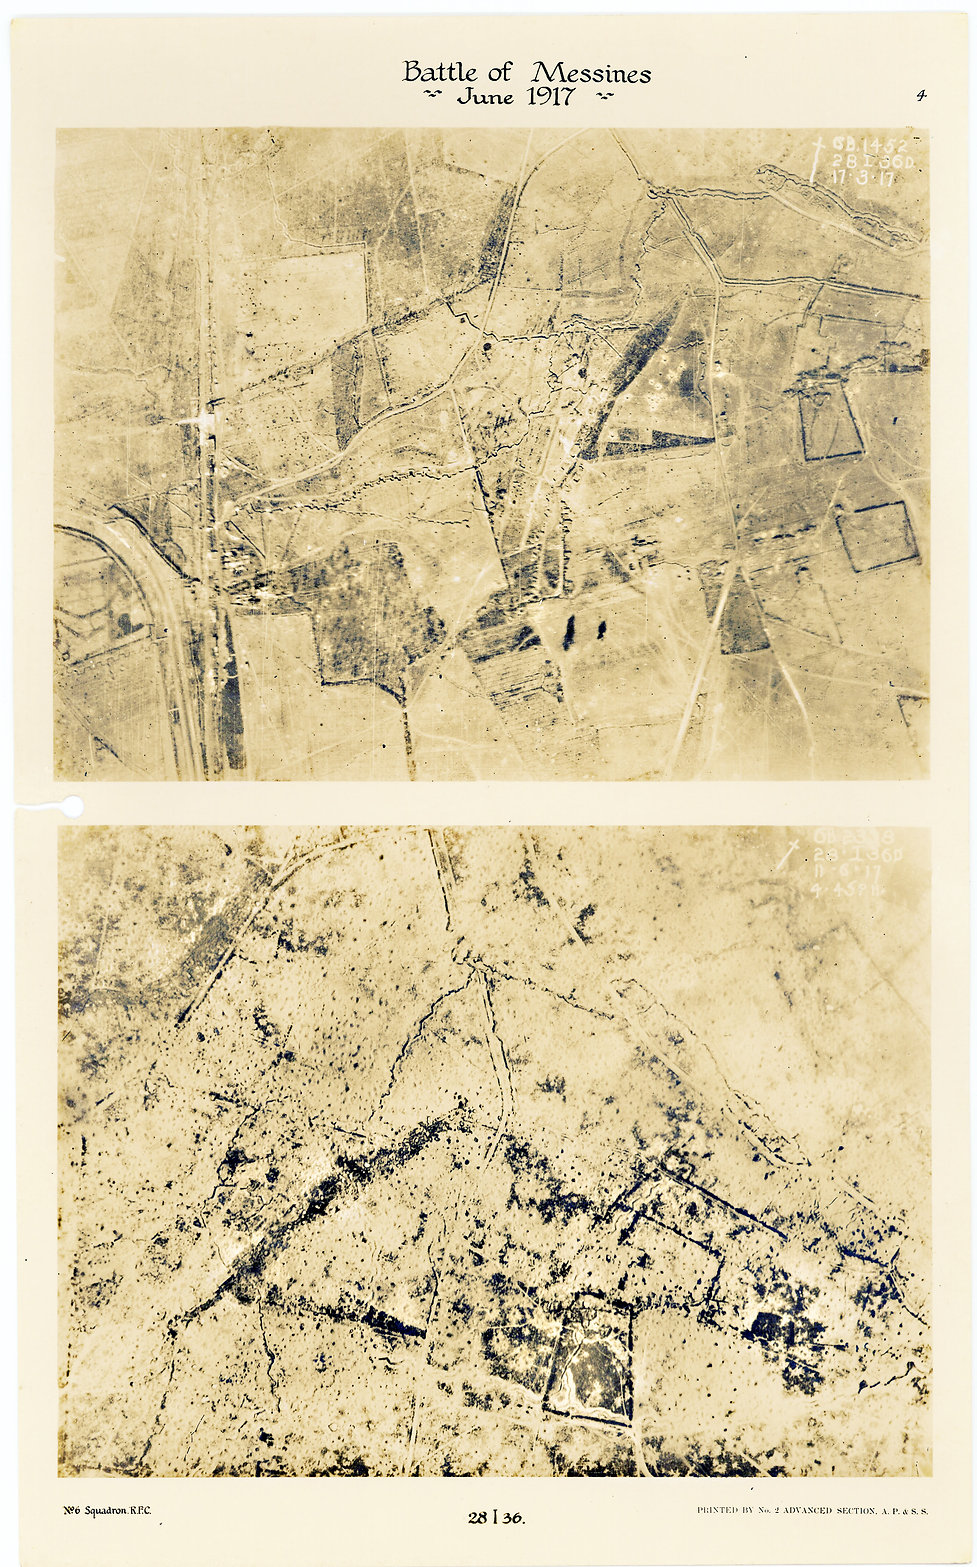 6 Squadron aerial photographs south of Klein Zillebeke, before and after the Battle of Messines 1917